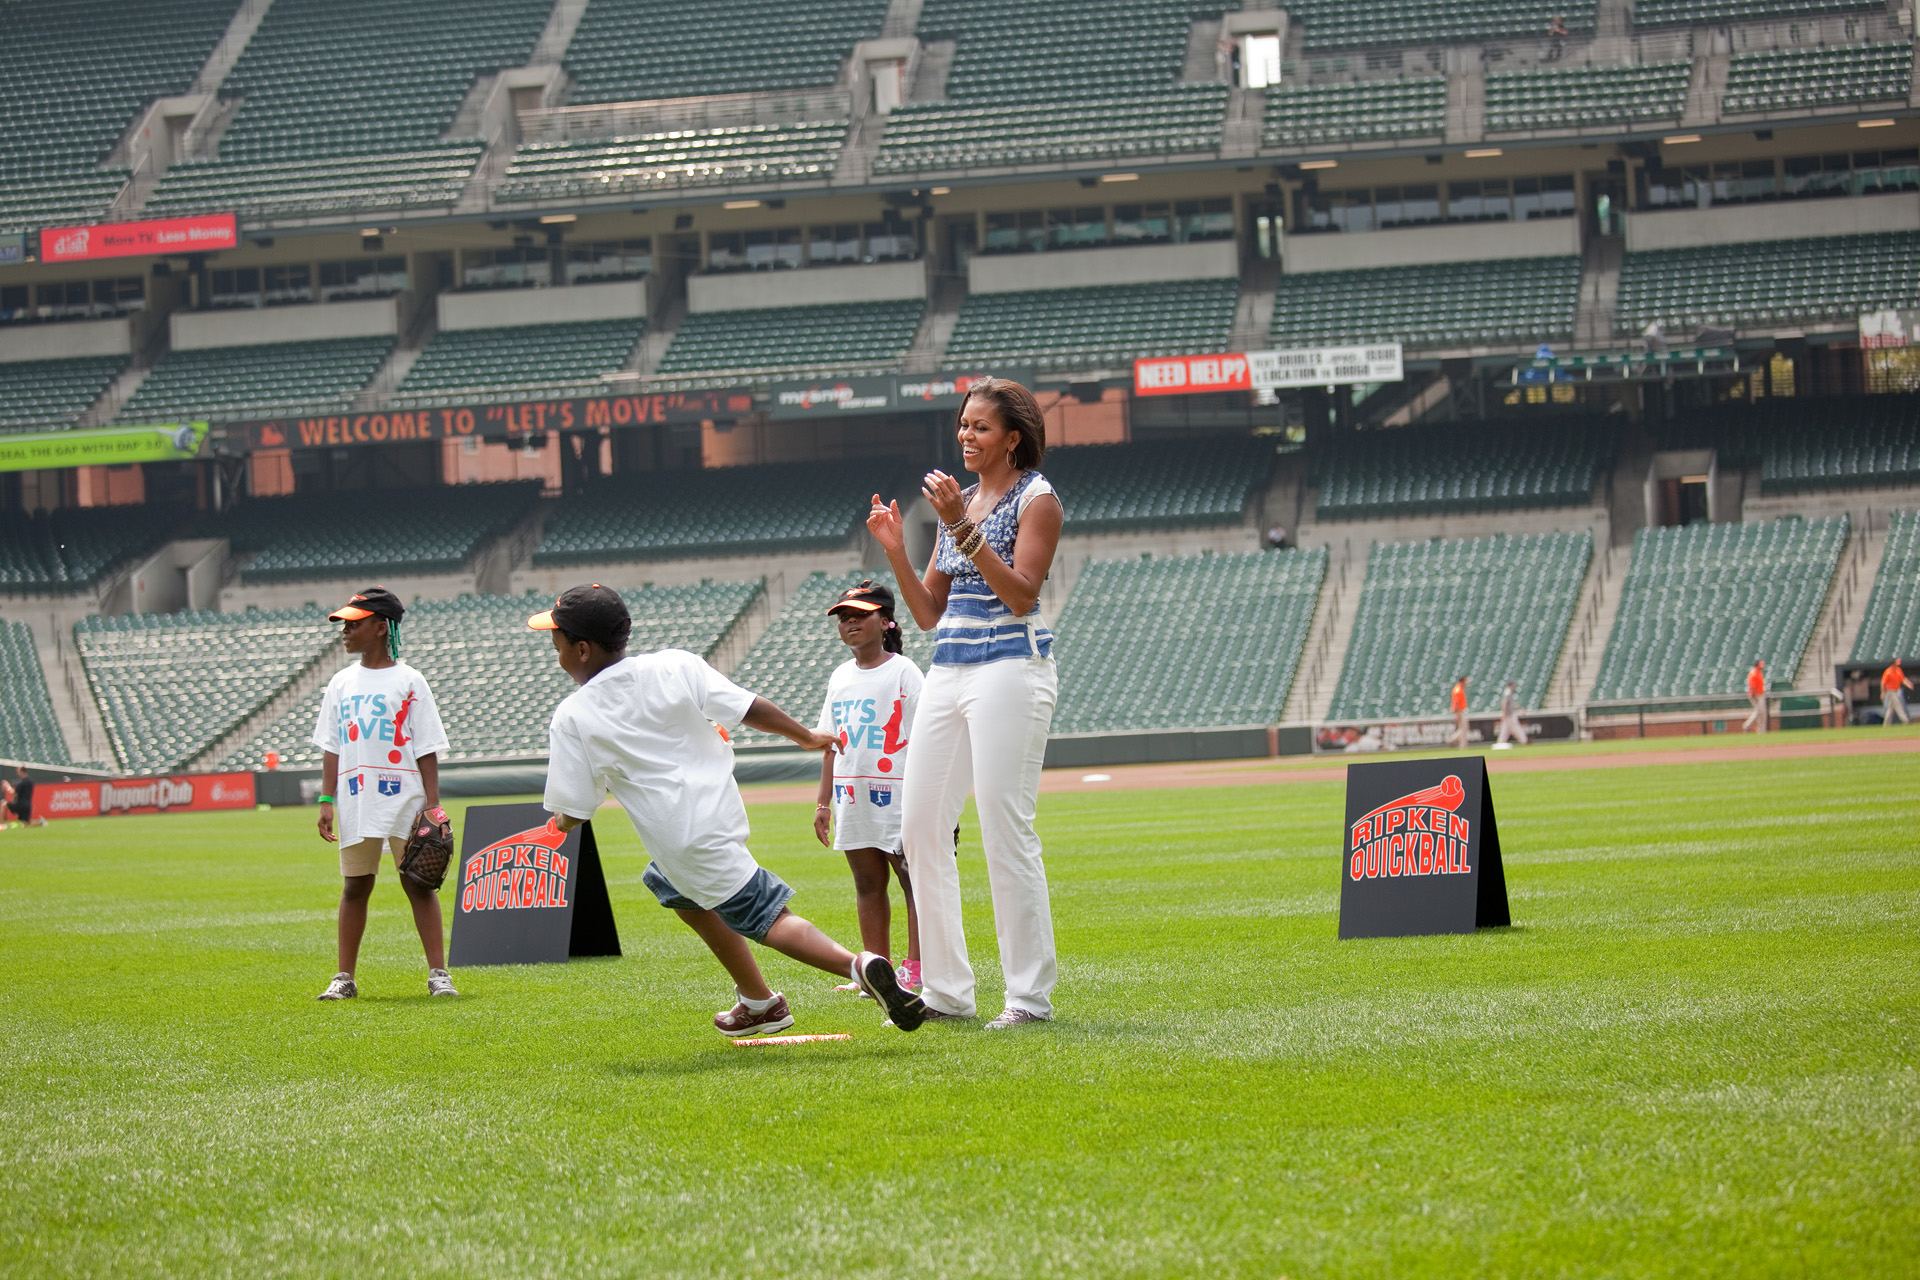 The First Lady Plays Baseball with Kids at Camden Yards